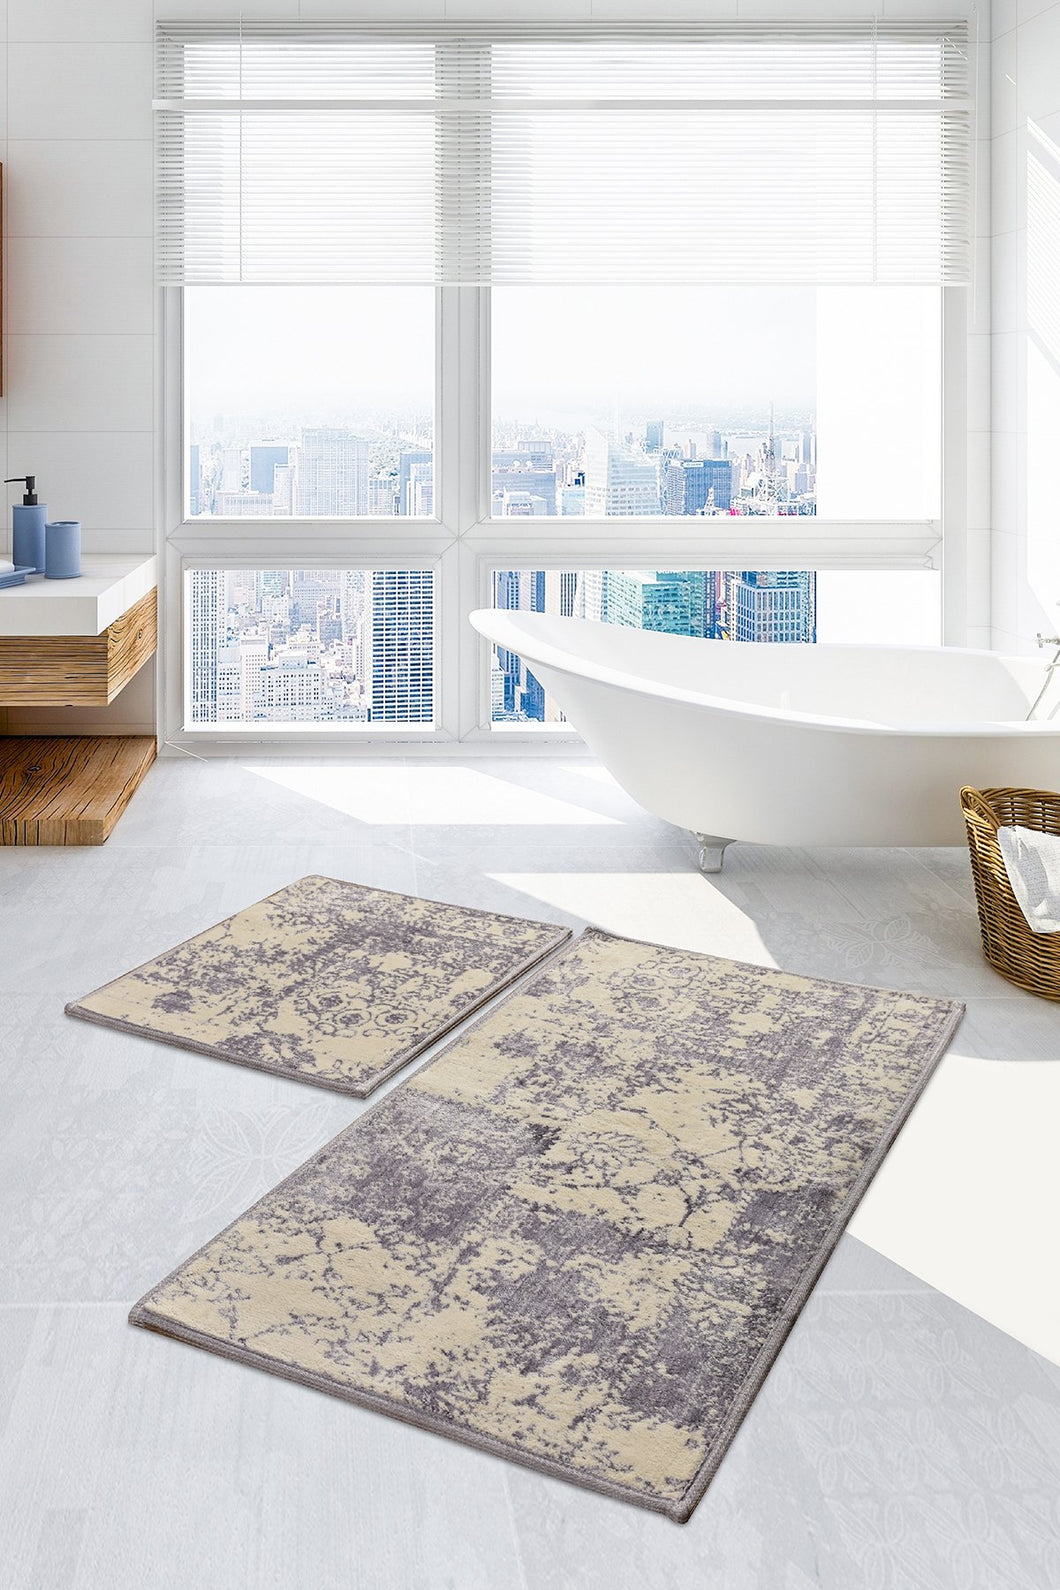 Antdecor Lilac Color Abstract Pattern Modern and Decorative Bathroom Rug